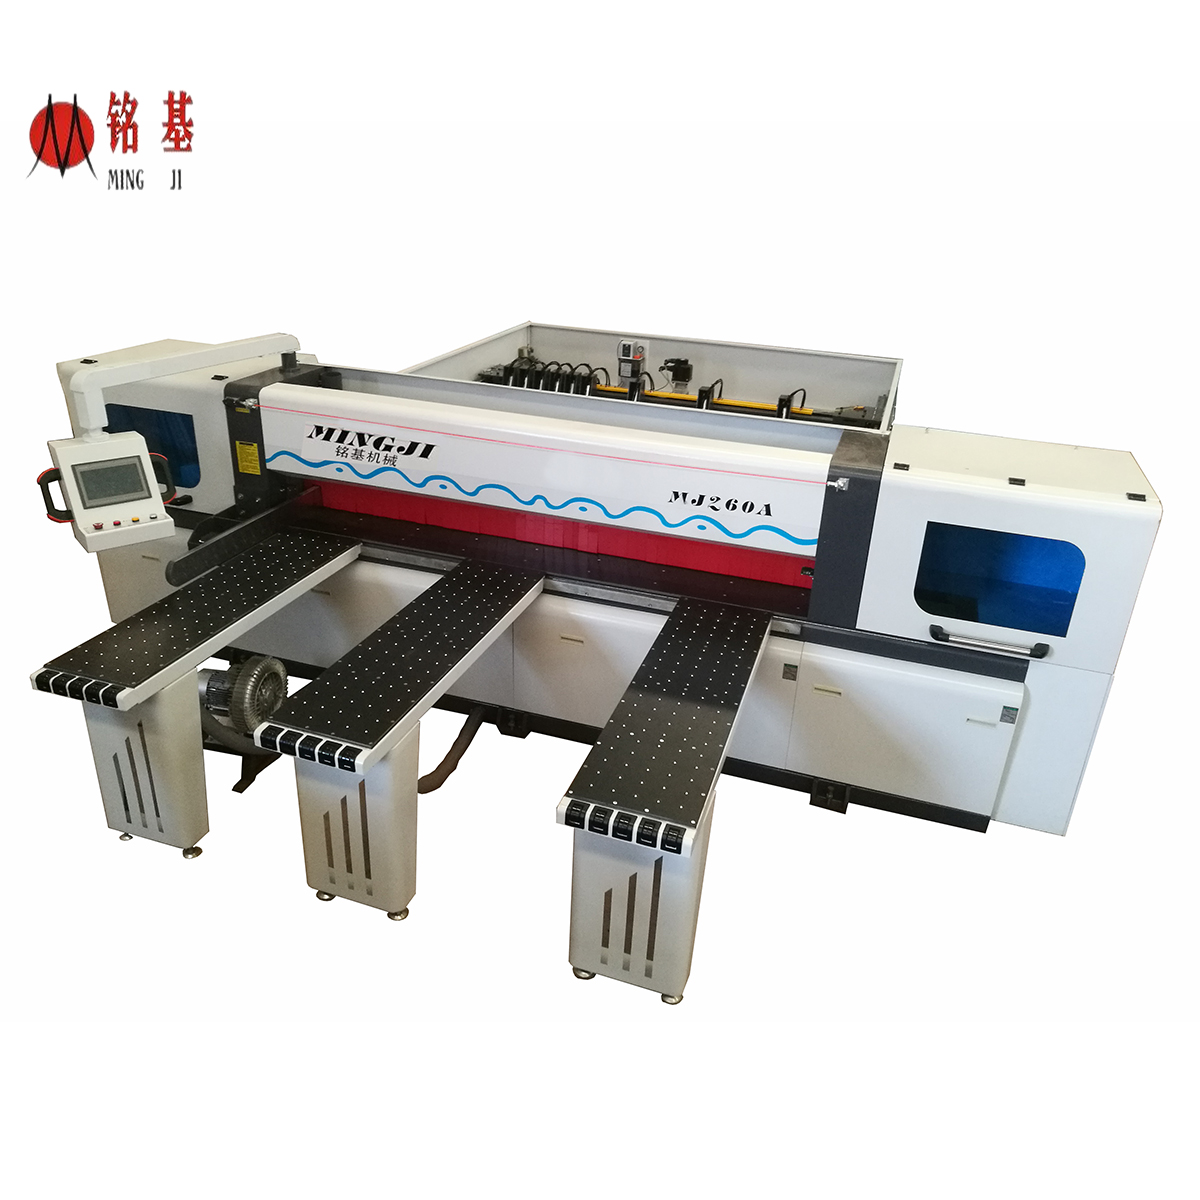 Which one is better? CNC panel saw compare or manual sliding table saw